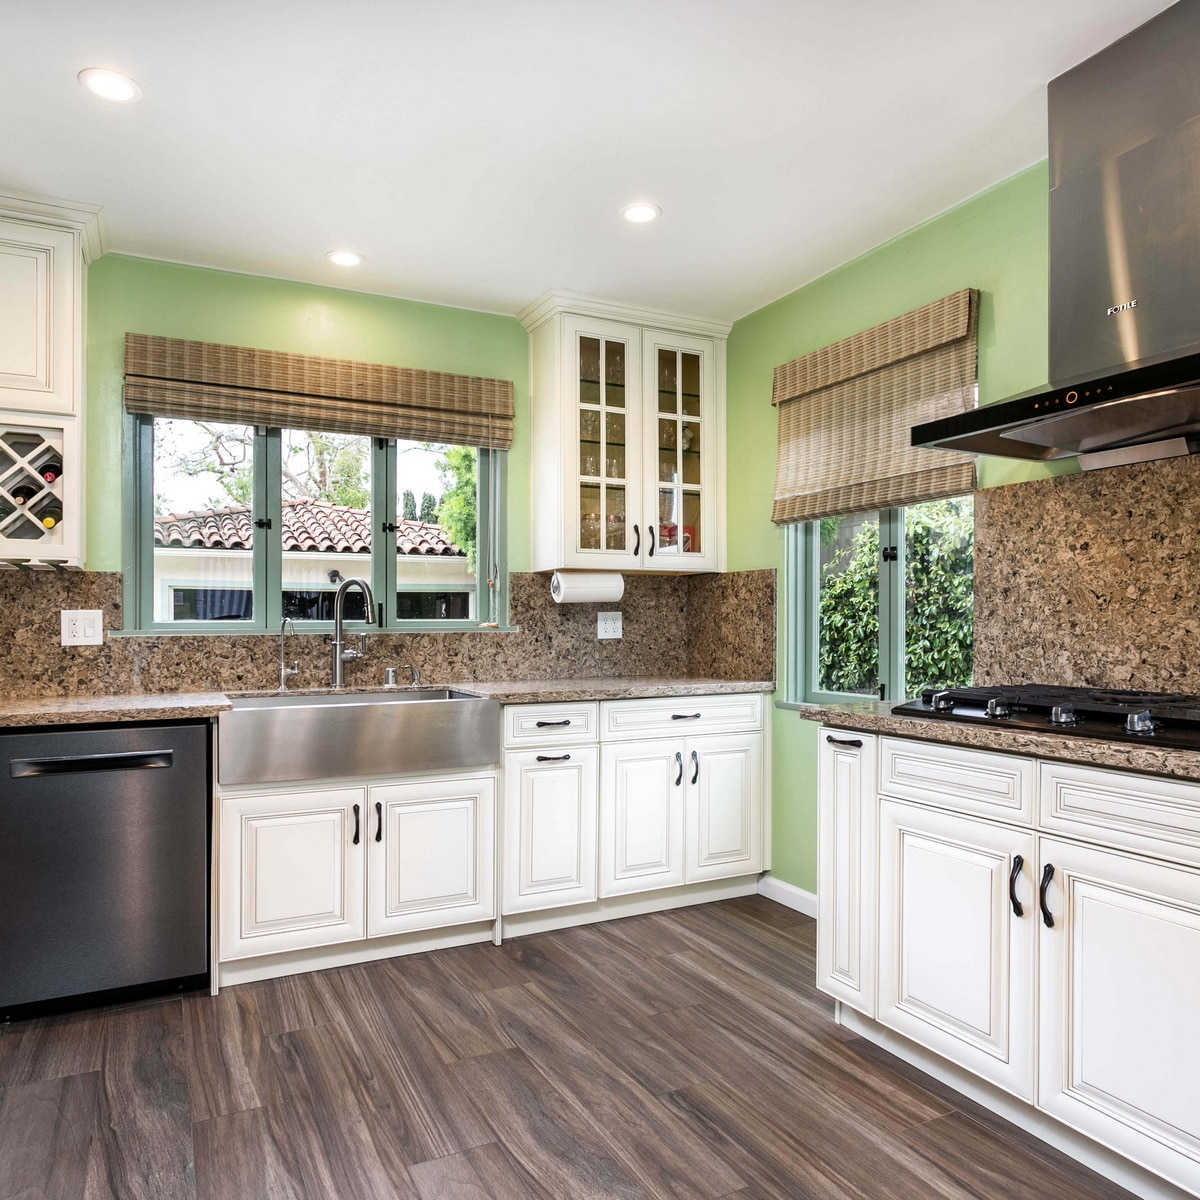 10 Budget Kitchen Ideas with White Shaker Cabinets in 2020 ...